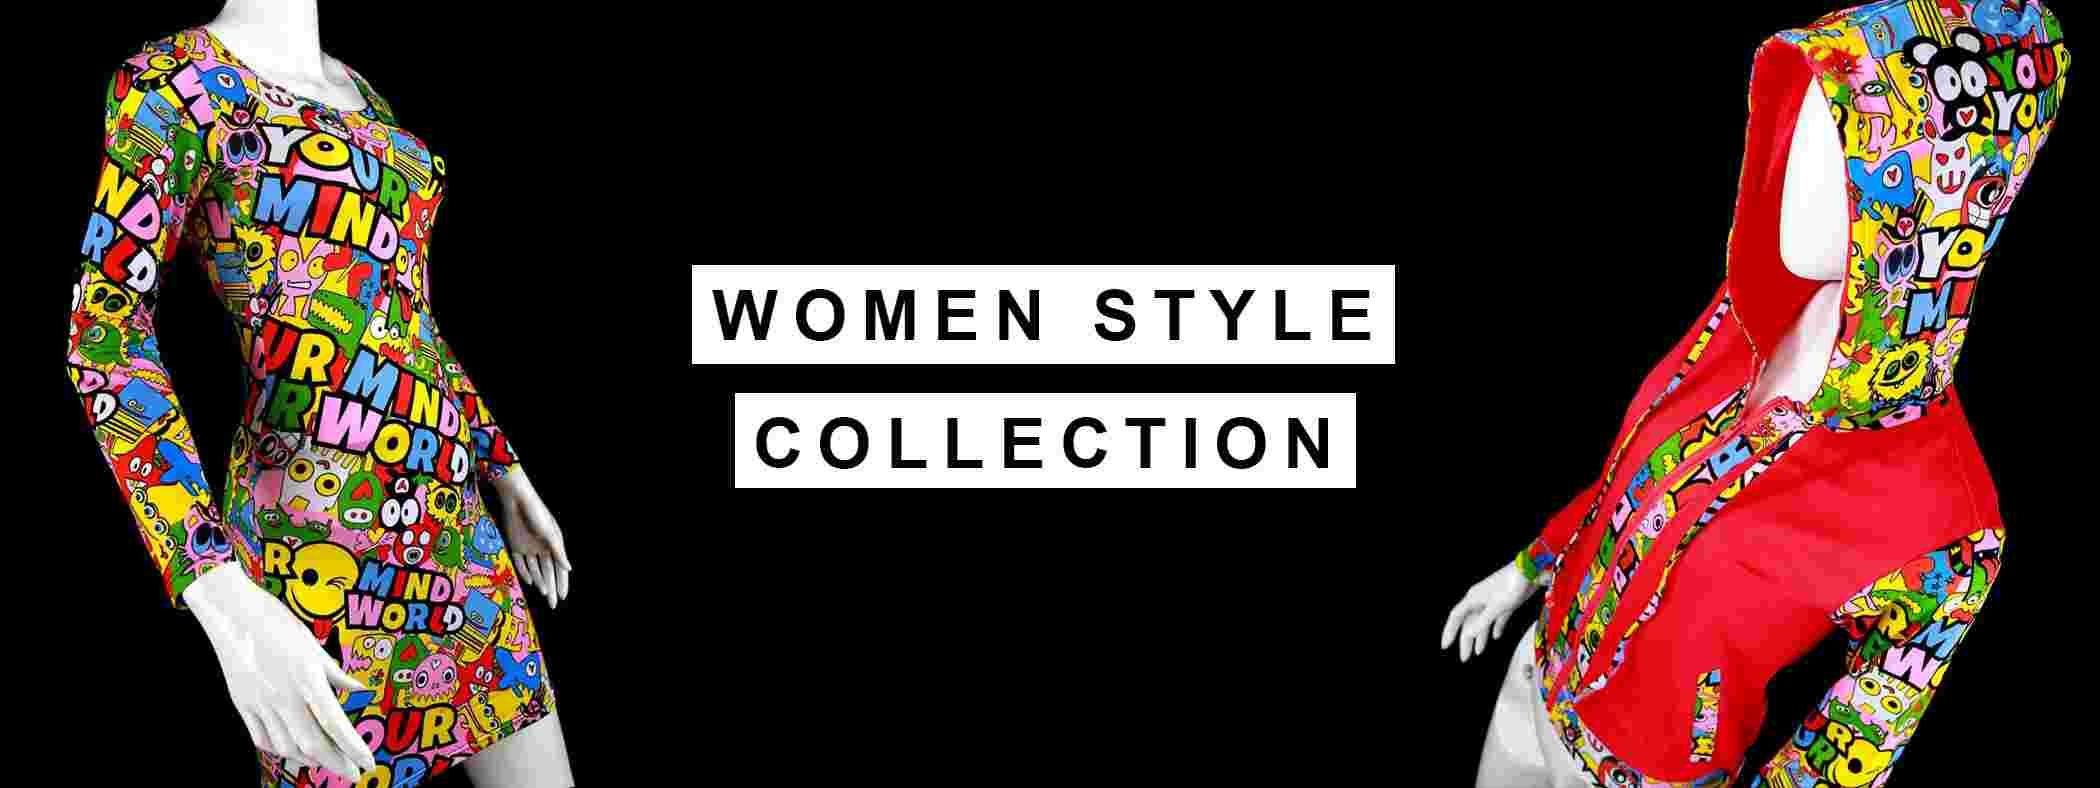 YMYW-Women-Style-Collection-Banner